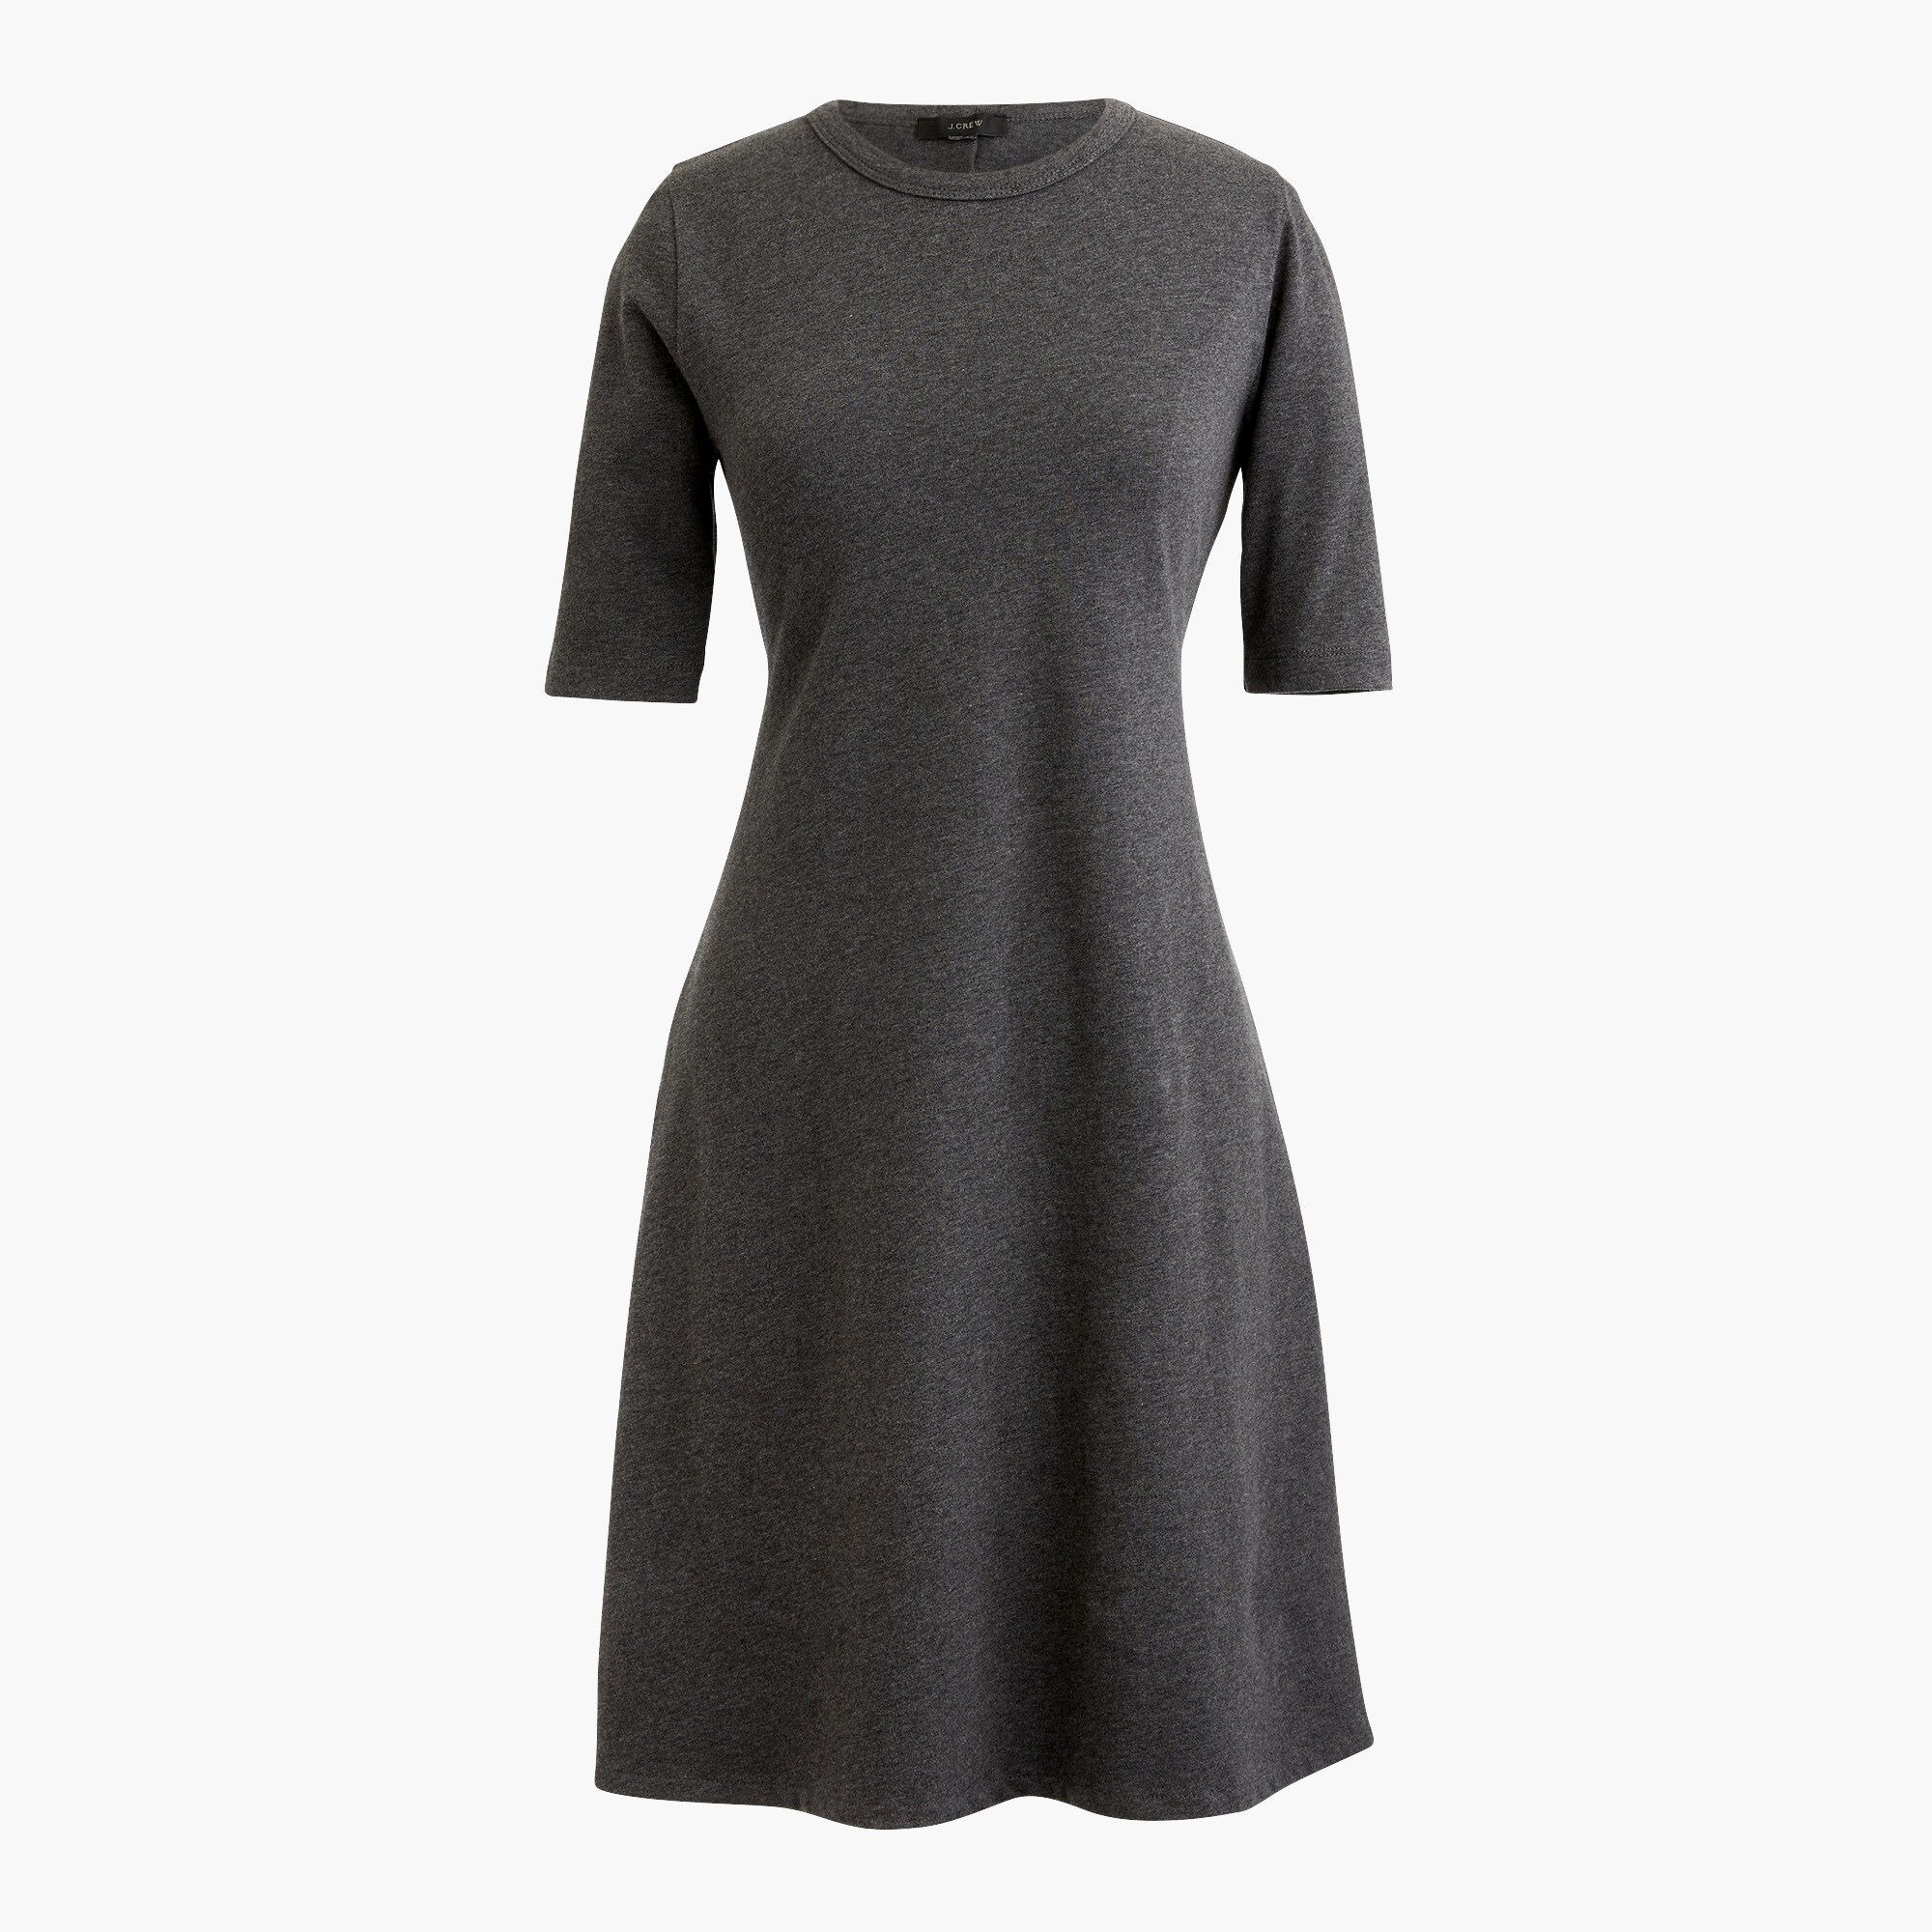 Image 3 for Tall short-sleeve knit dress